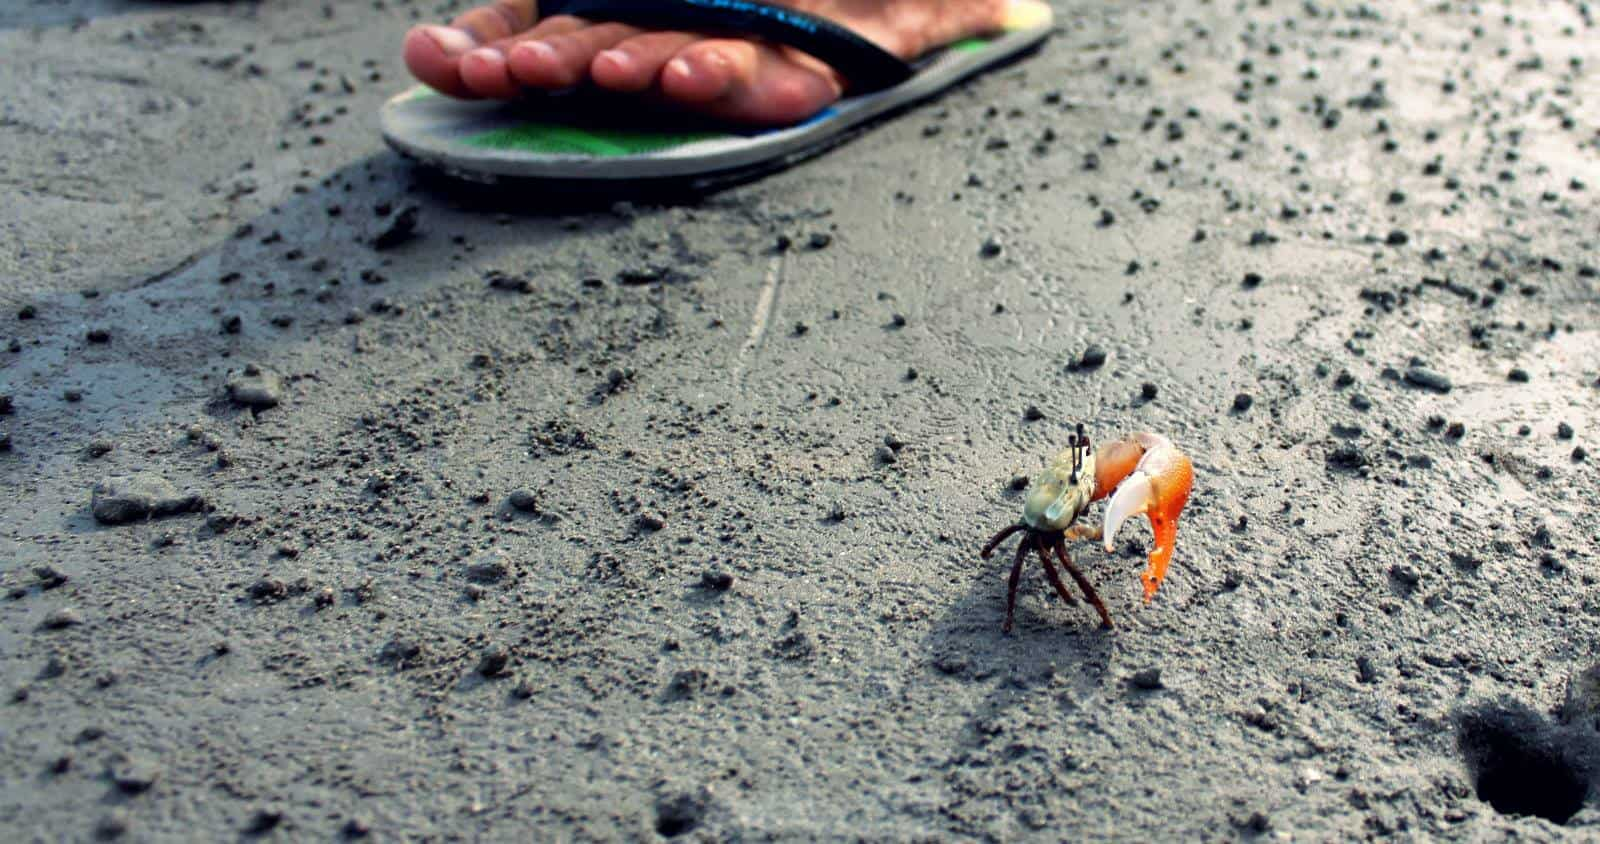 This little crab only has one claw...